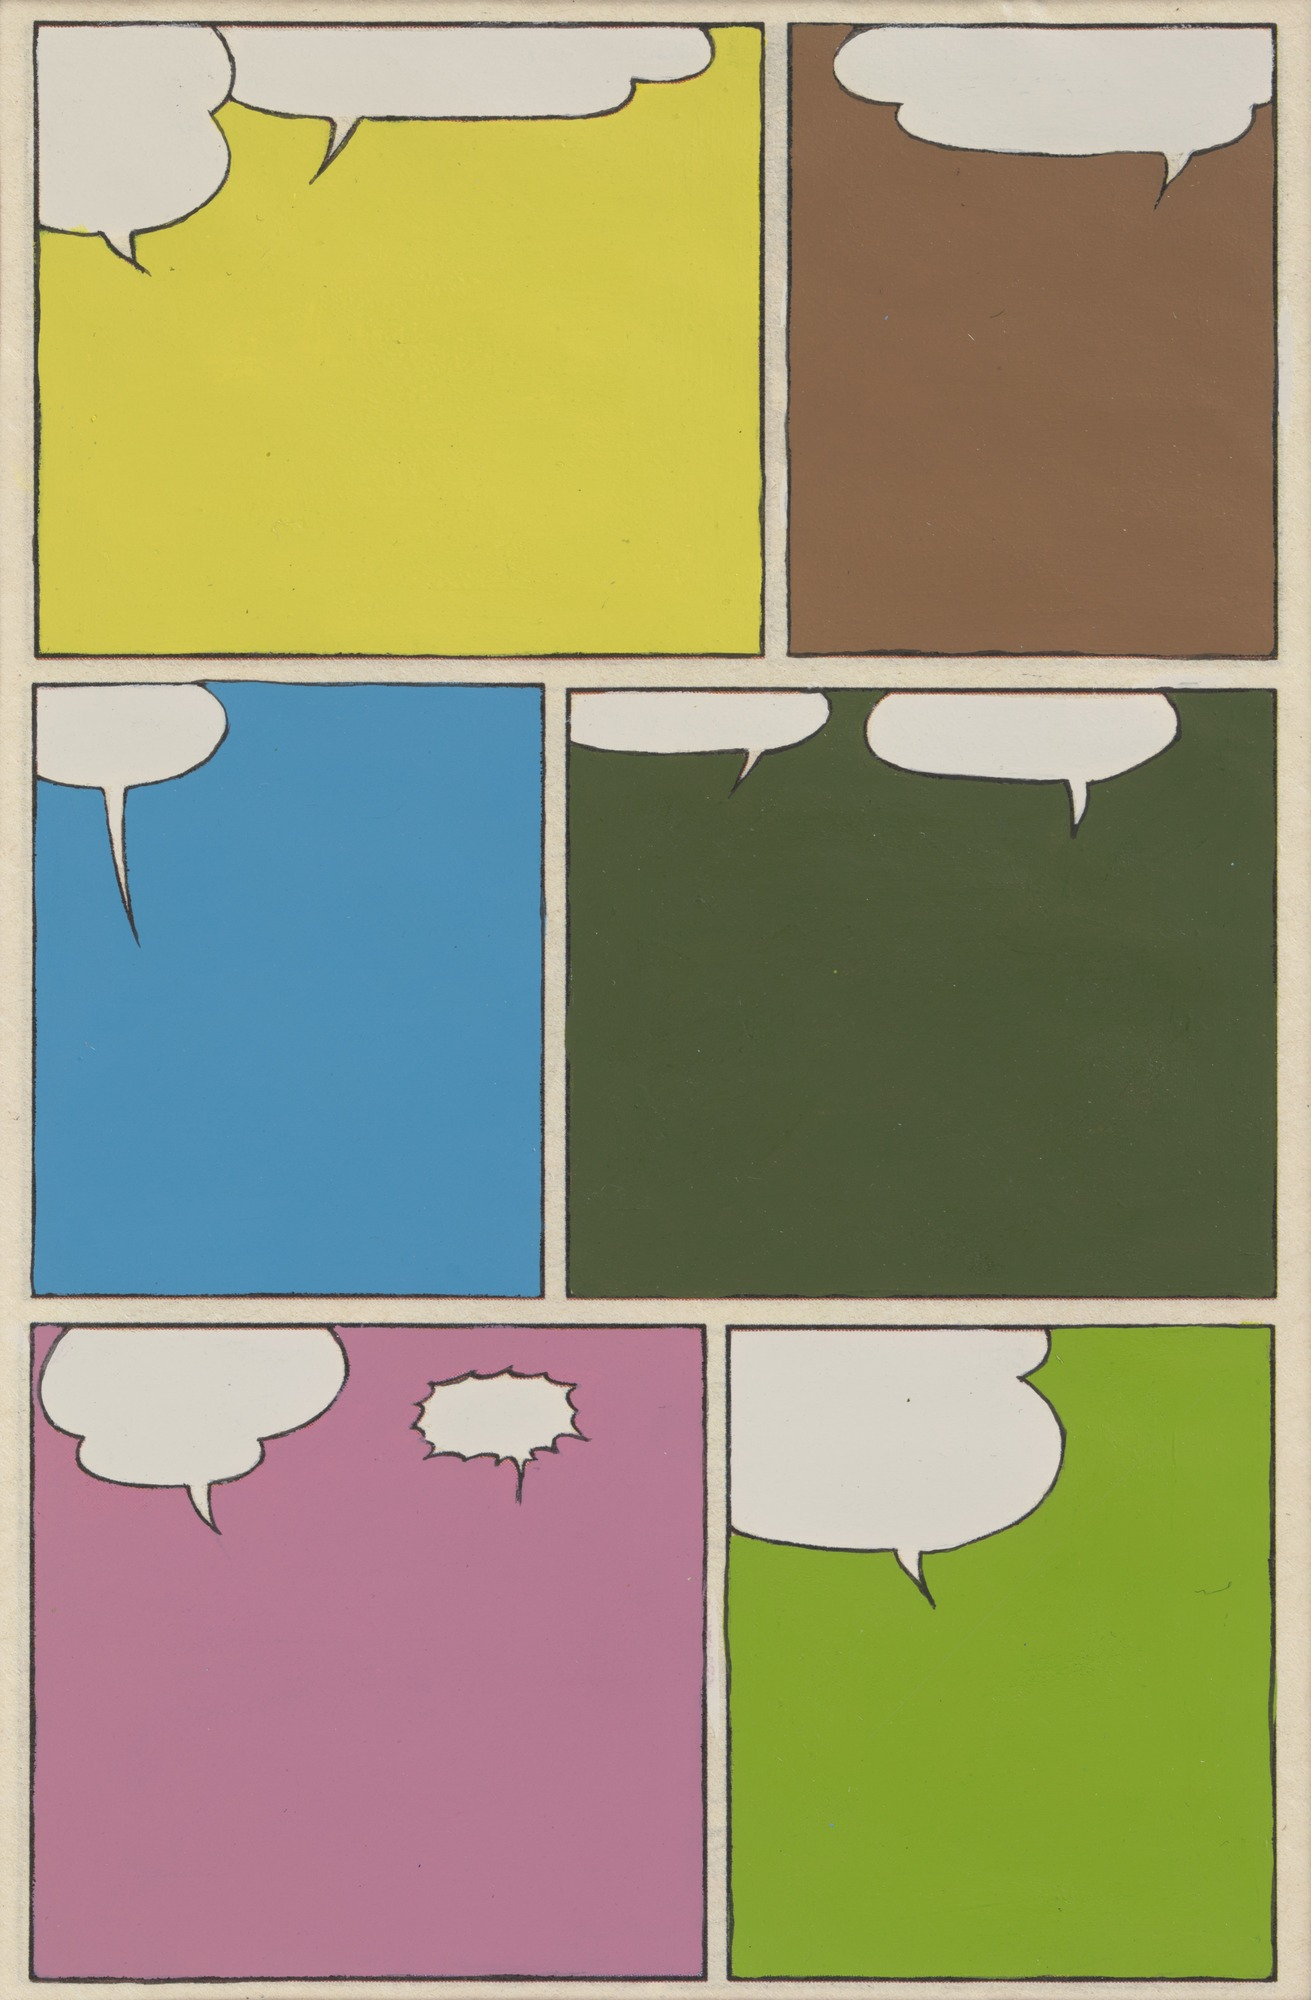 A work by Rivane Neuenschwander that is made up of comic panels and speech bubbles. Each panels are filled with different colors and the speech bubbles are empty.